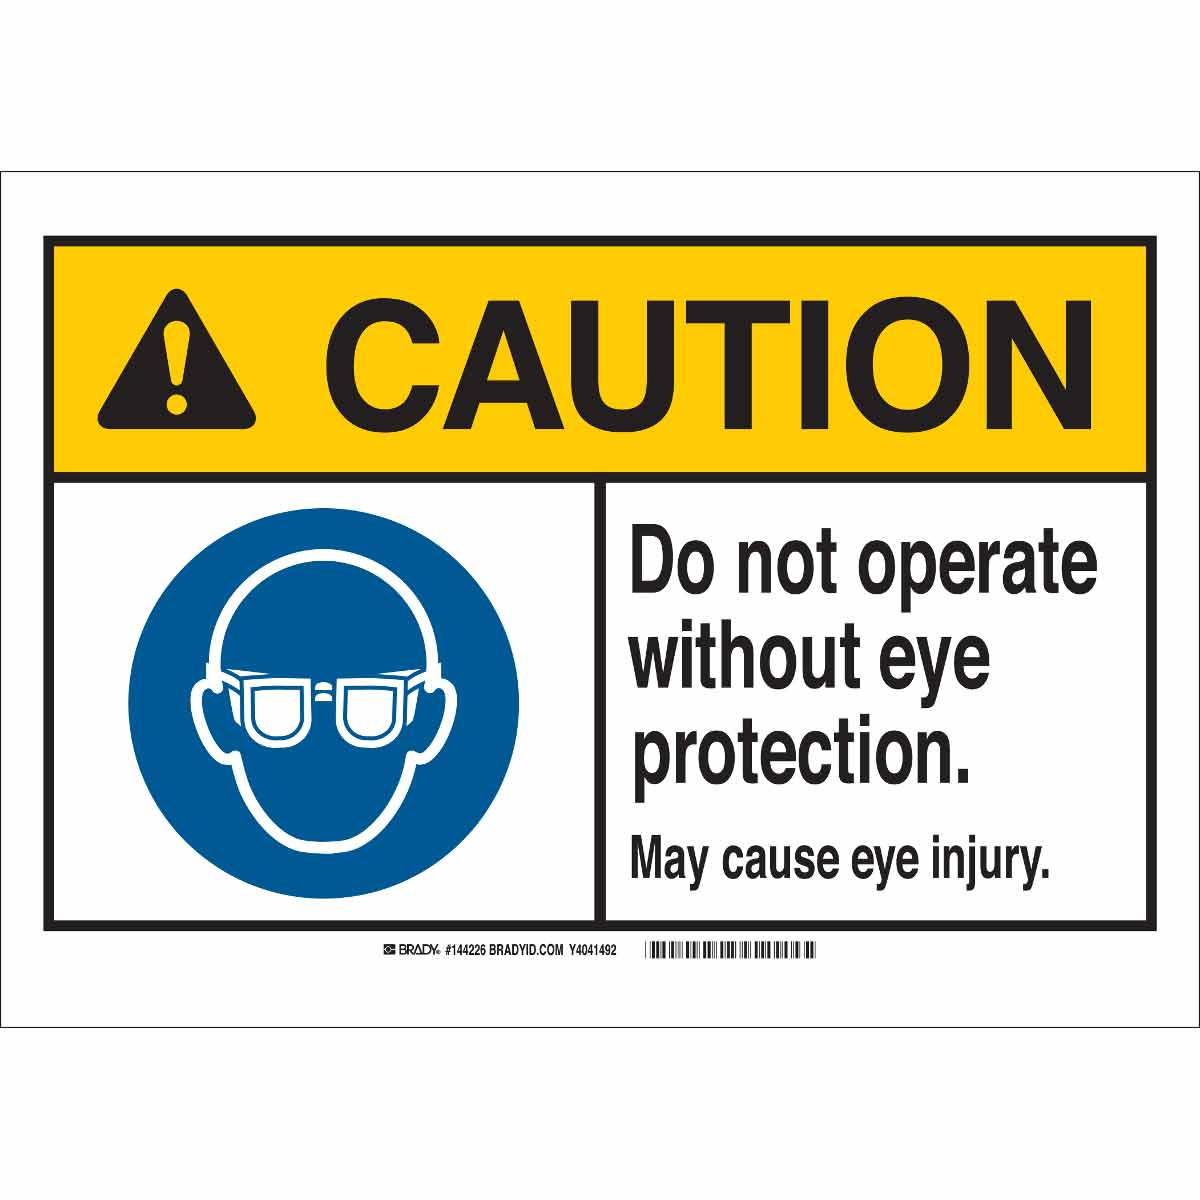 Brady Part 144221 Caution Do Not Operate Without Eye Protection May Cause Eye Injury Sign Bradyid Com